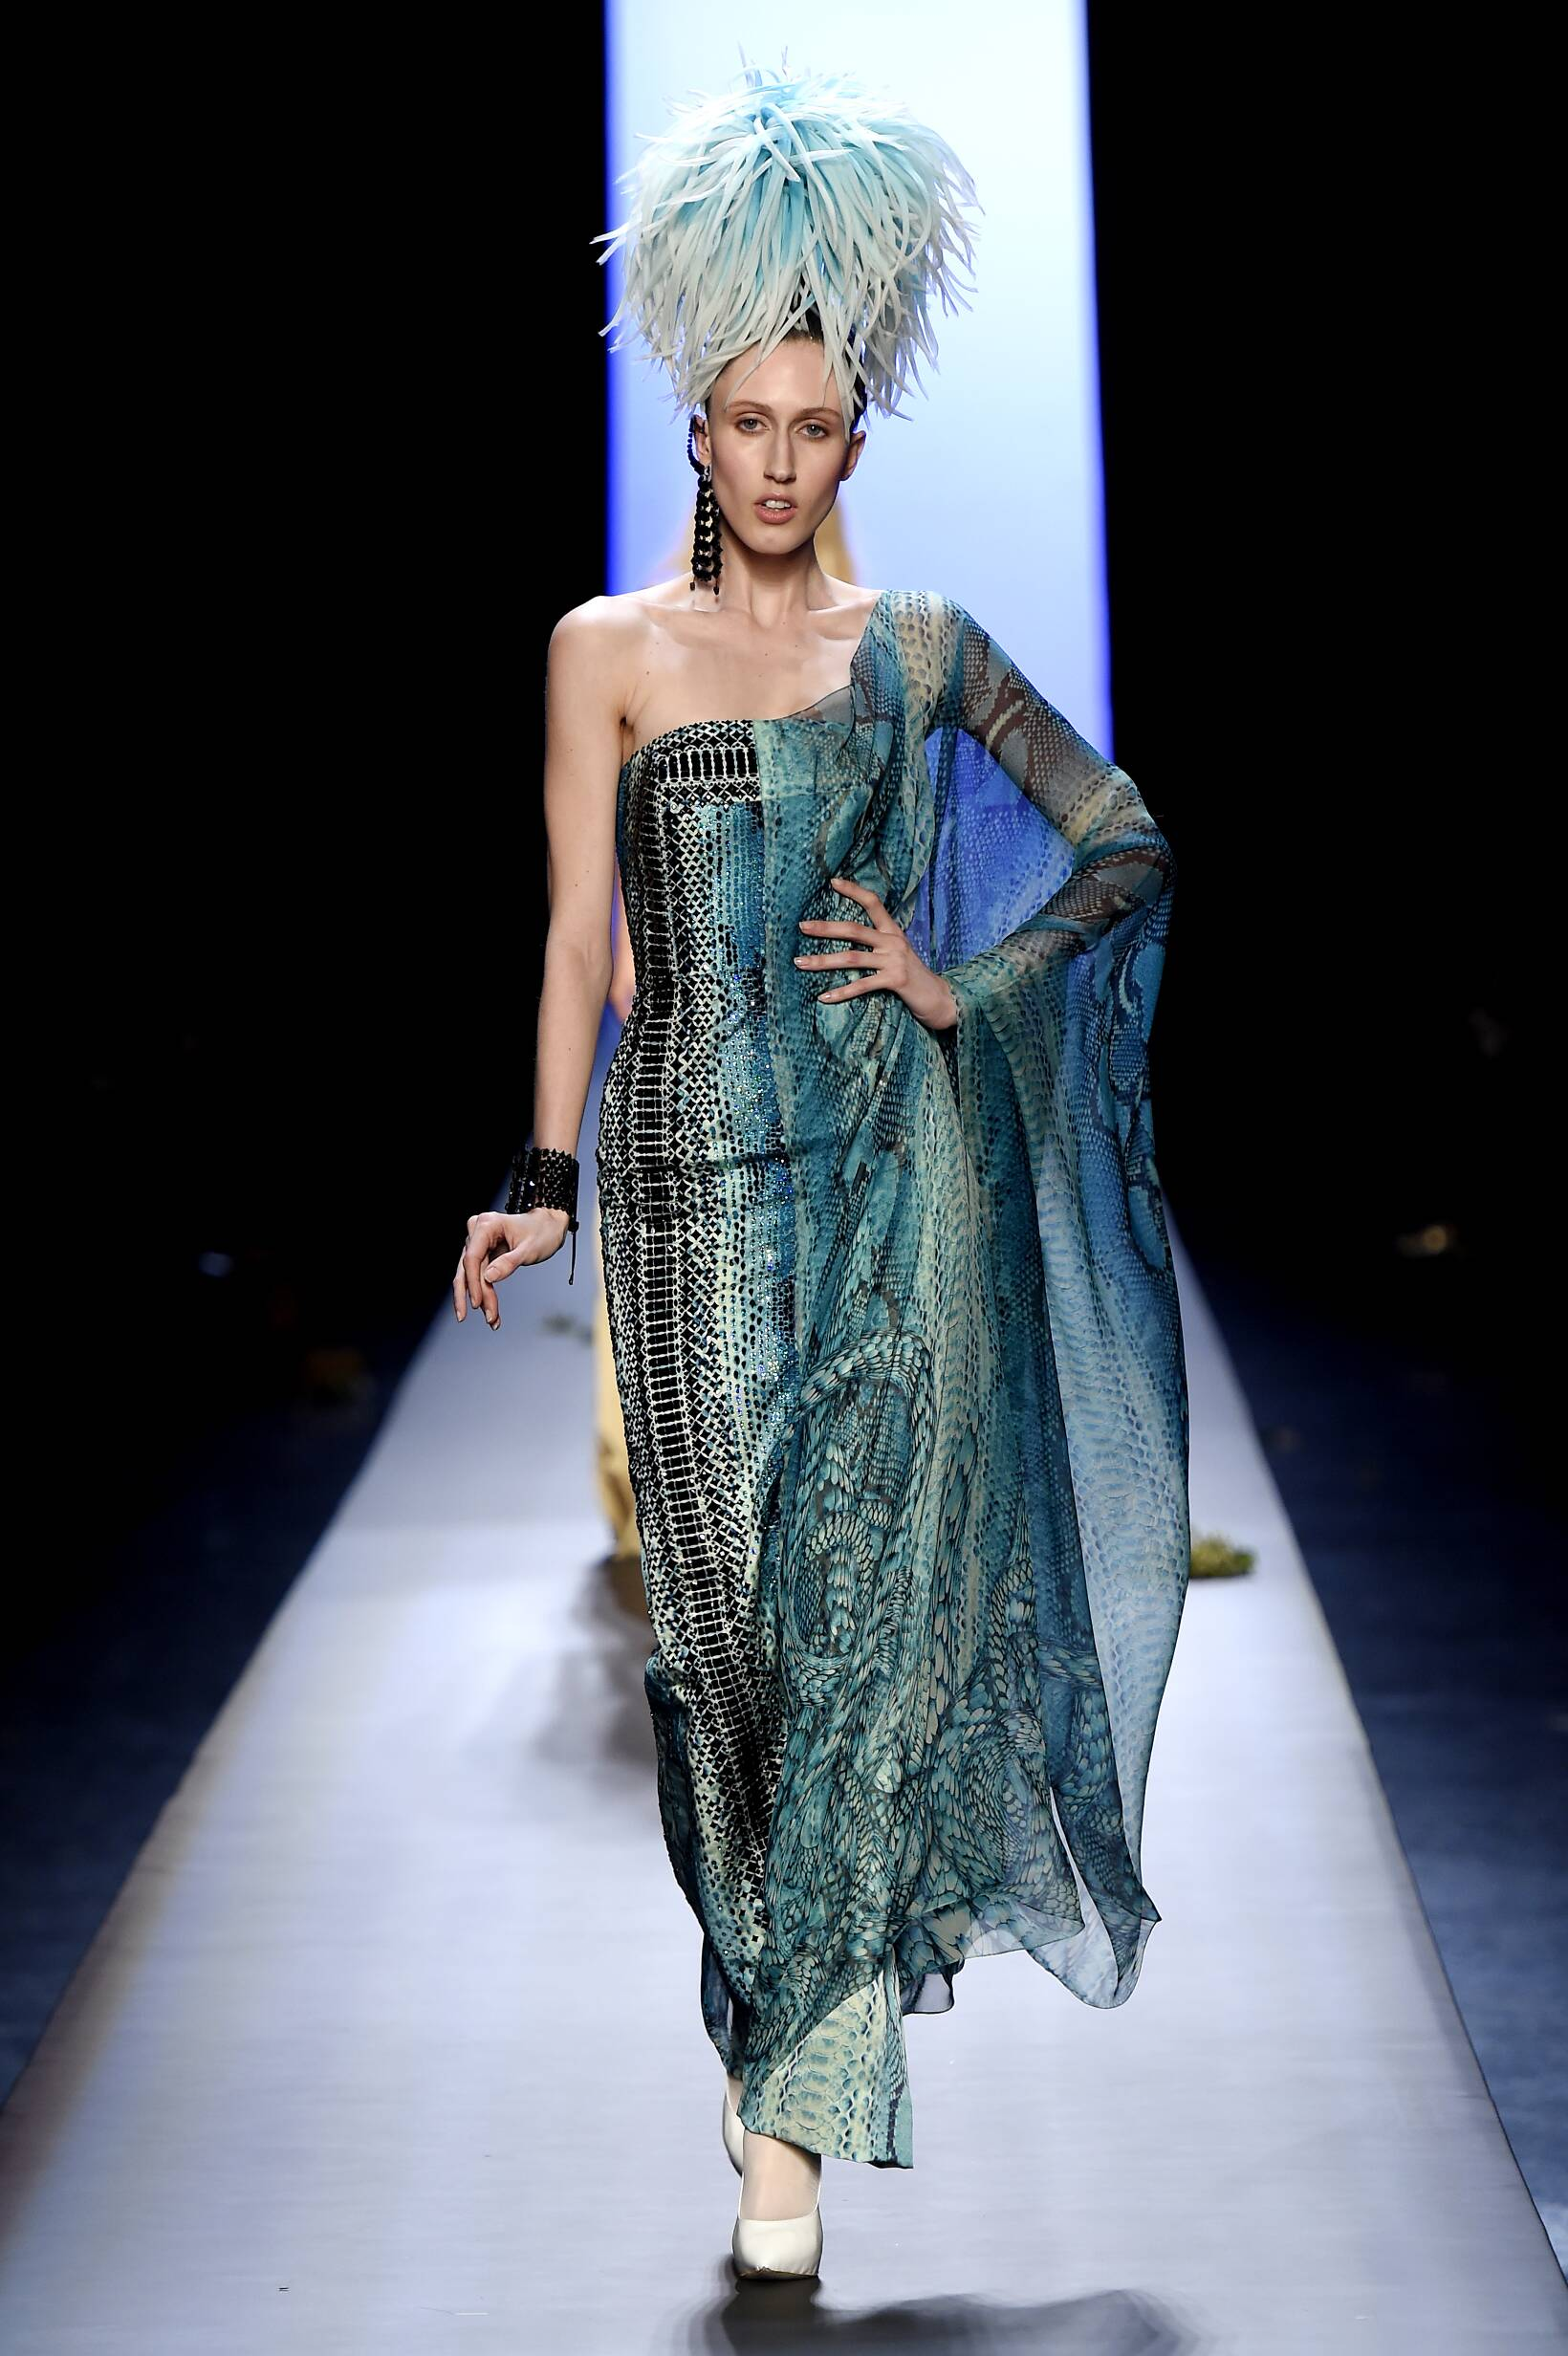 2015 Summer Fashion Trends Jean Paul Gaultier Haute Couture Collection Womanswear